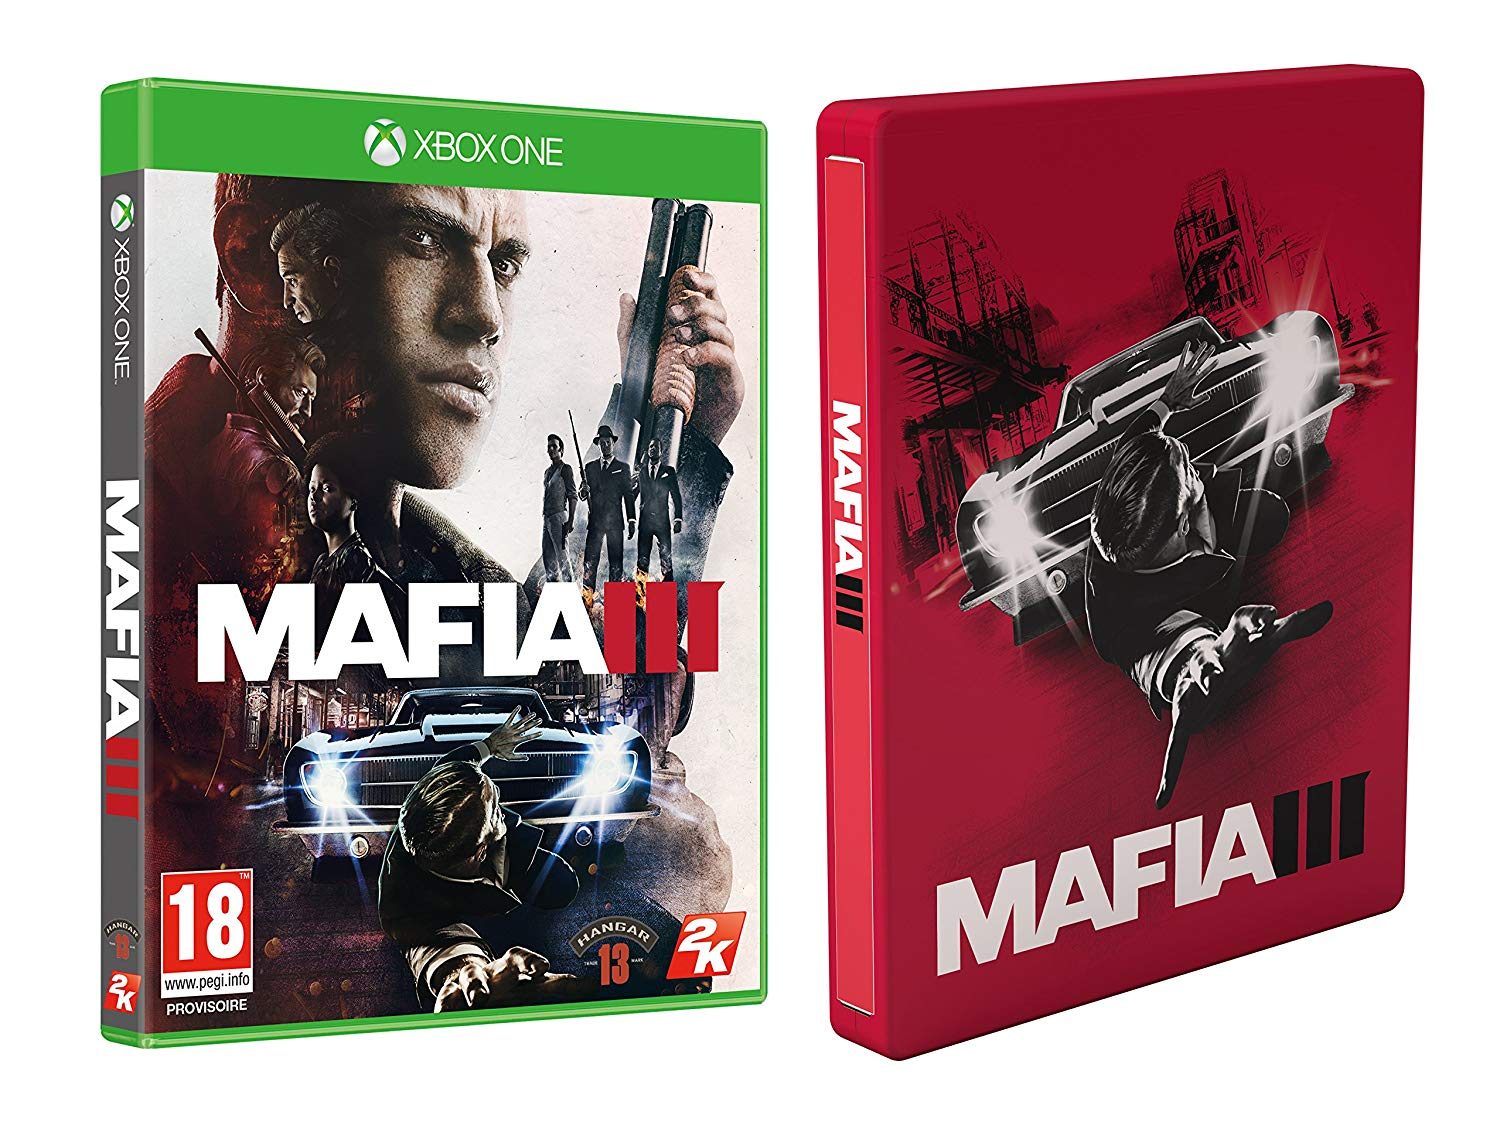 Mafia 3 - Steelbook - Xbox One